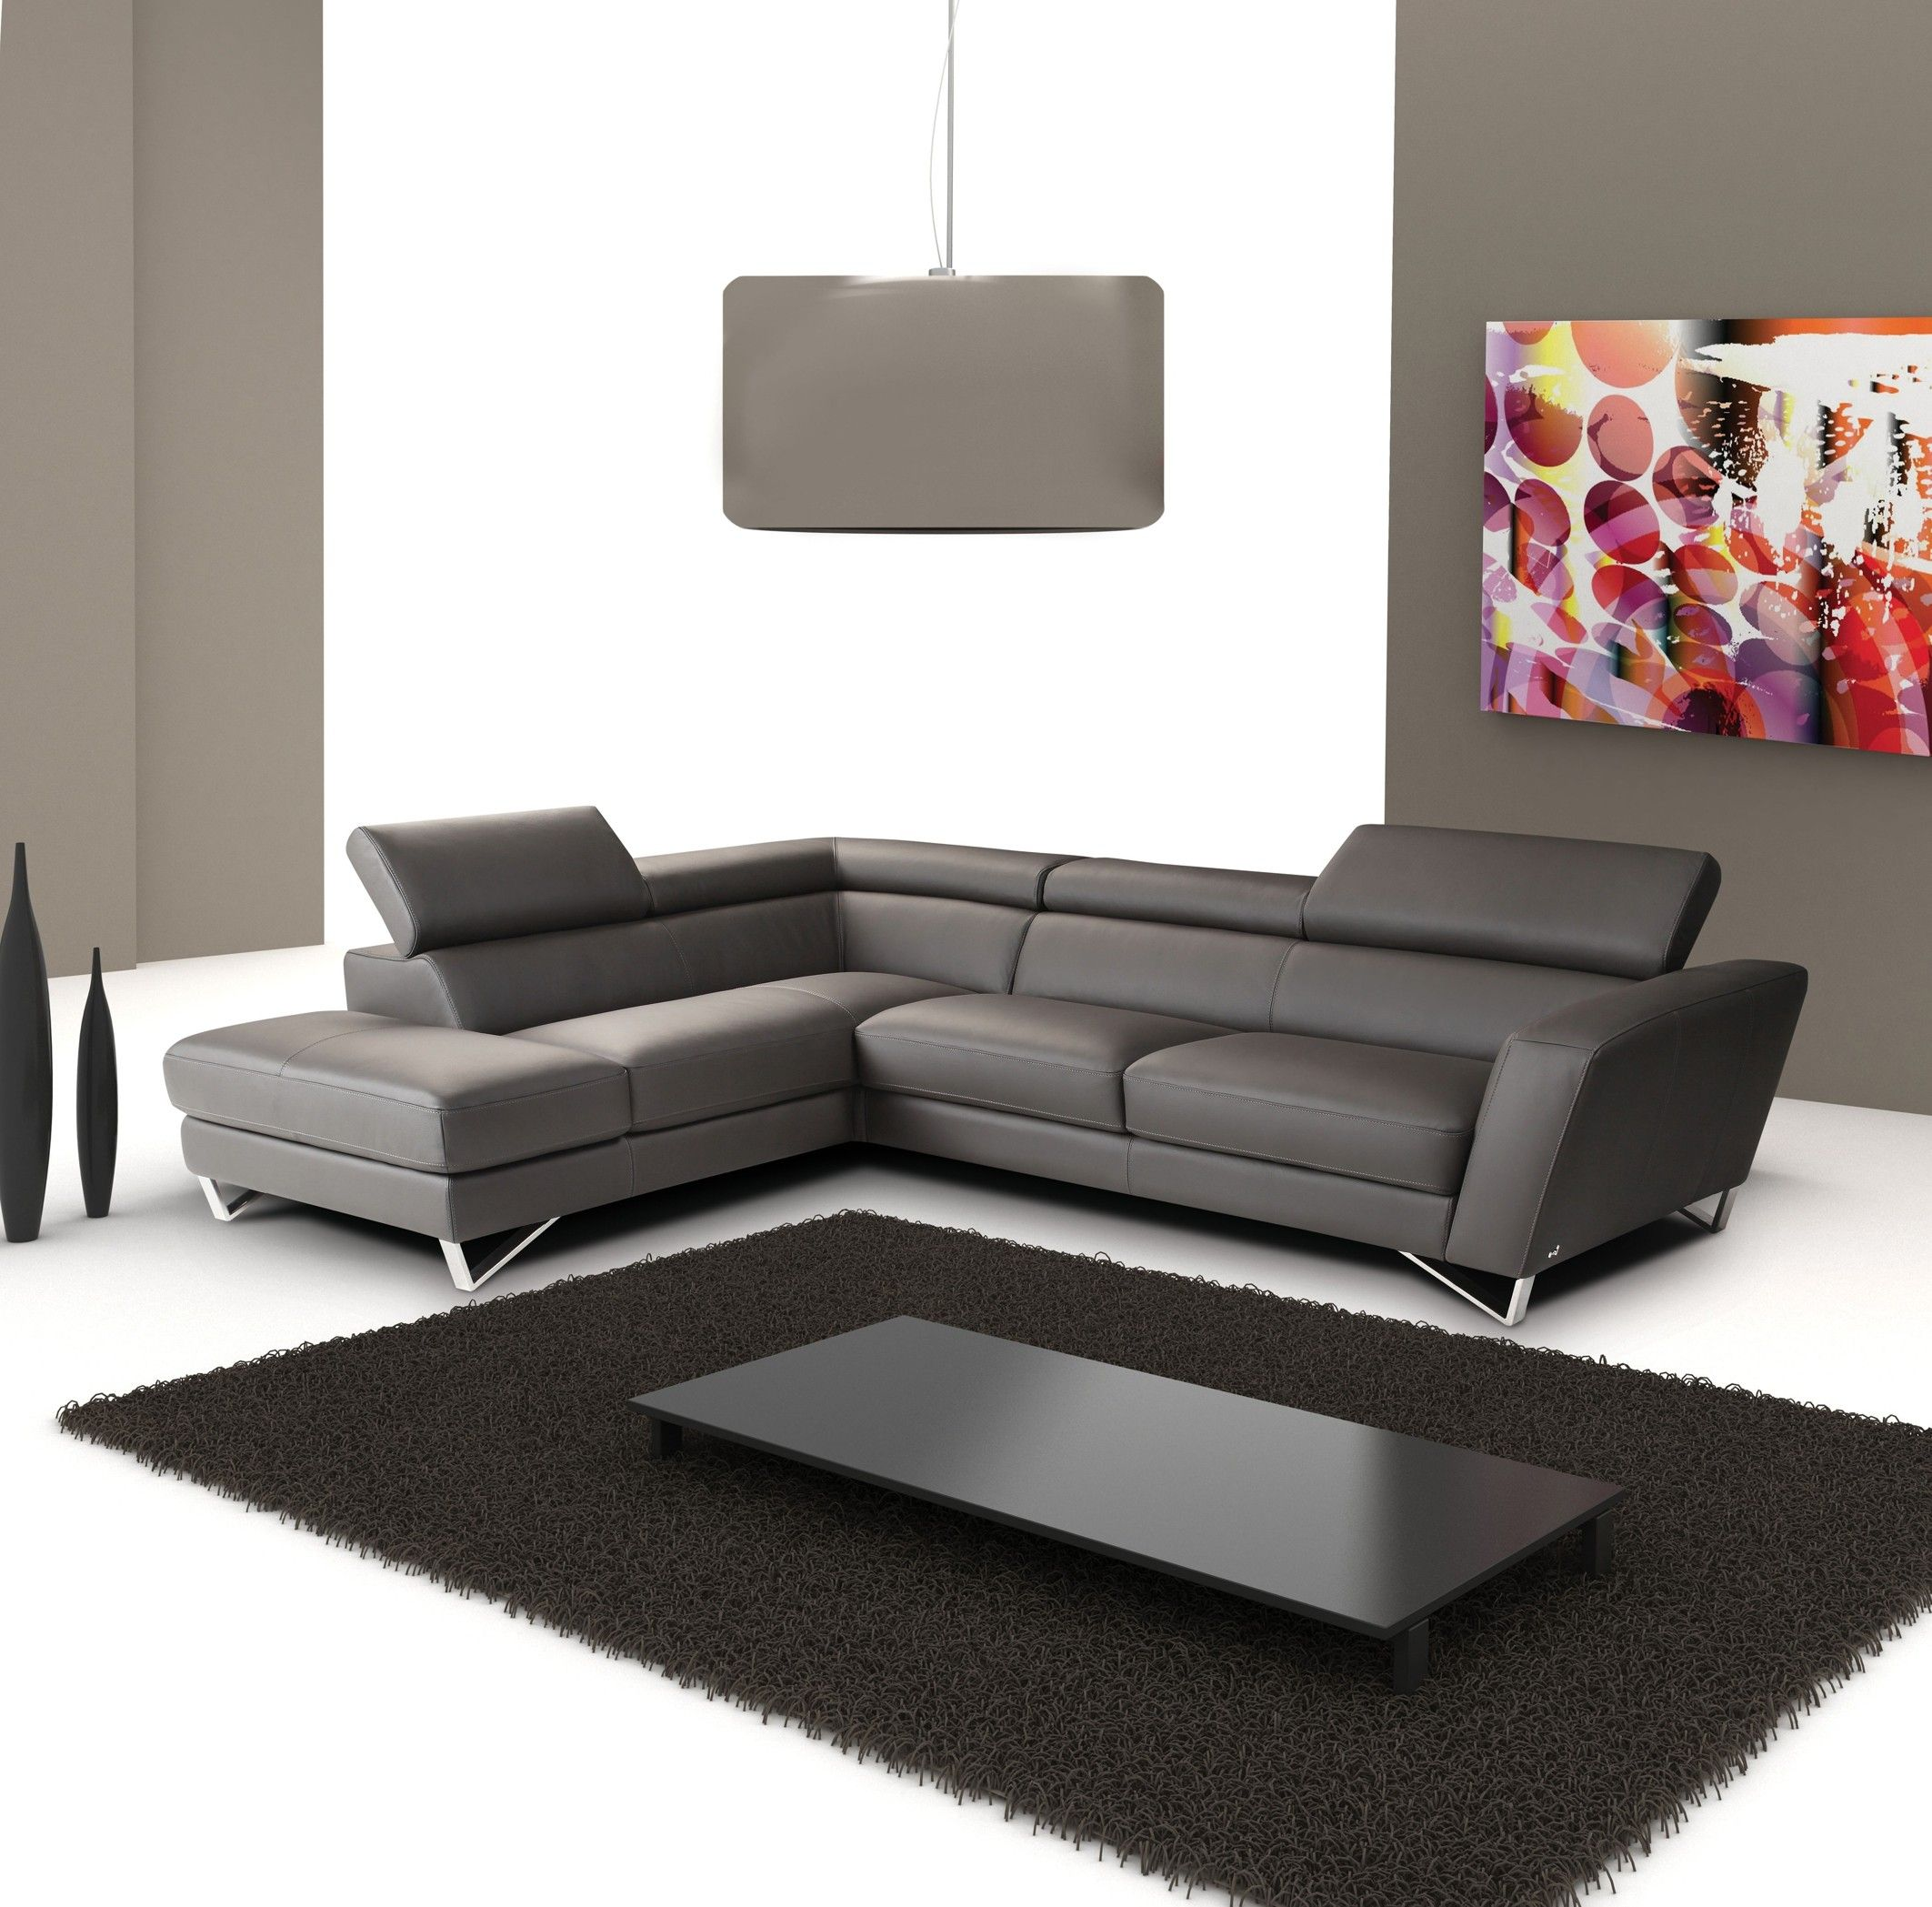 designers shop manufacturers designer options digs in collection cool to variety the sectionals bring you at very our modern materials sofas sectional colors a buyers best contemporary and of